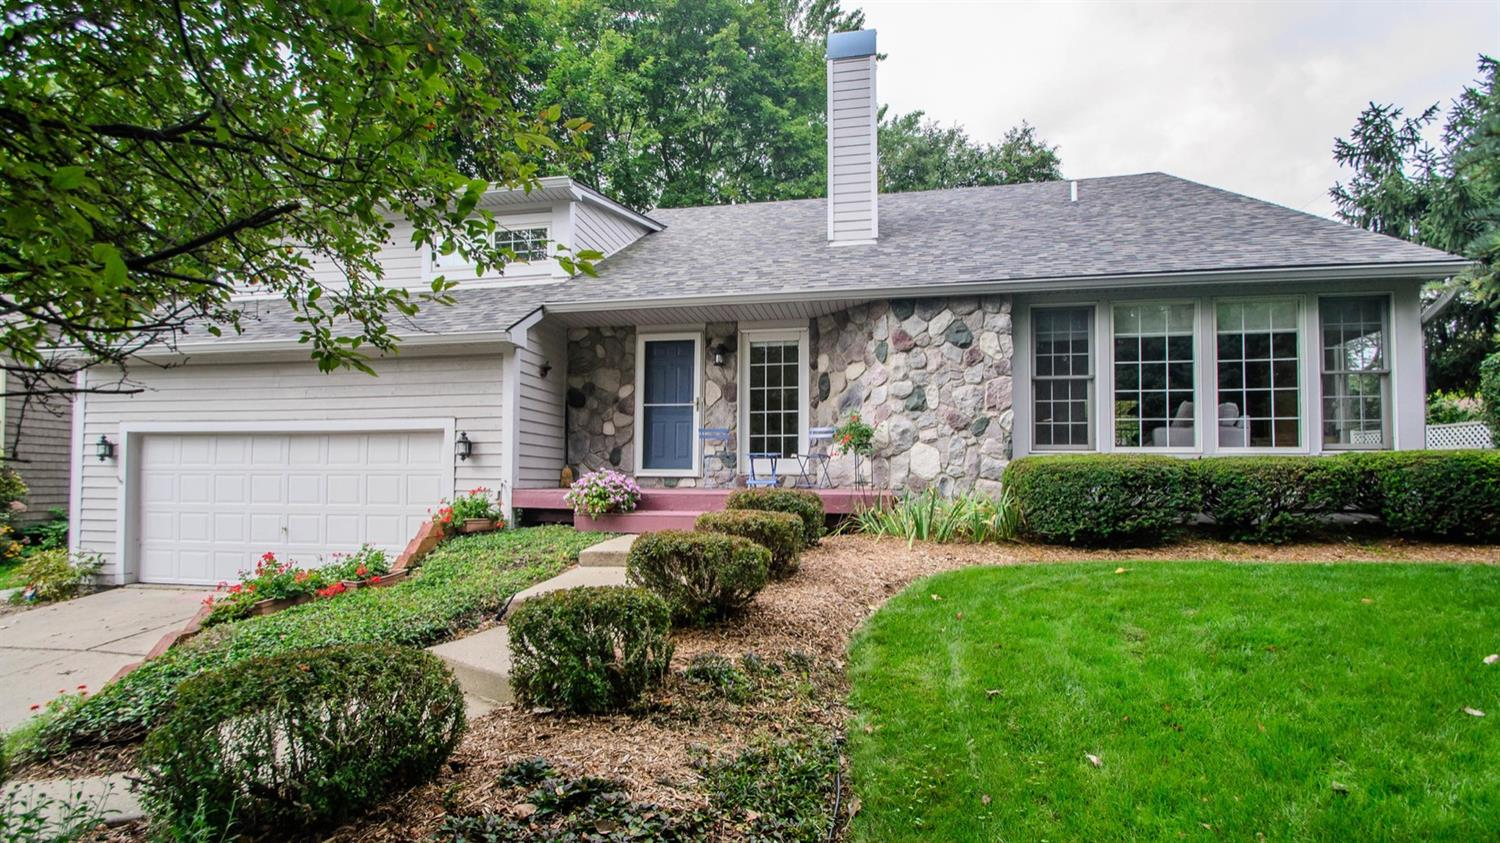 MLS# 3268596 - 1908  Old Pear Tree Court Ann Arbor MI 48103